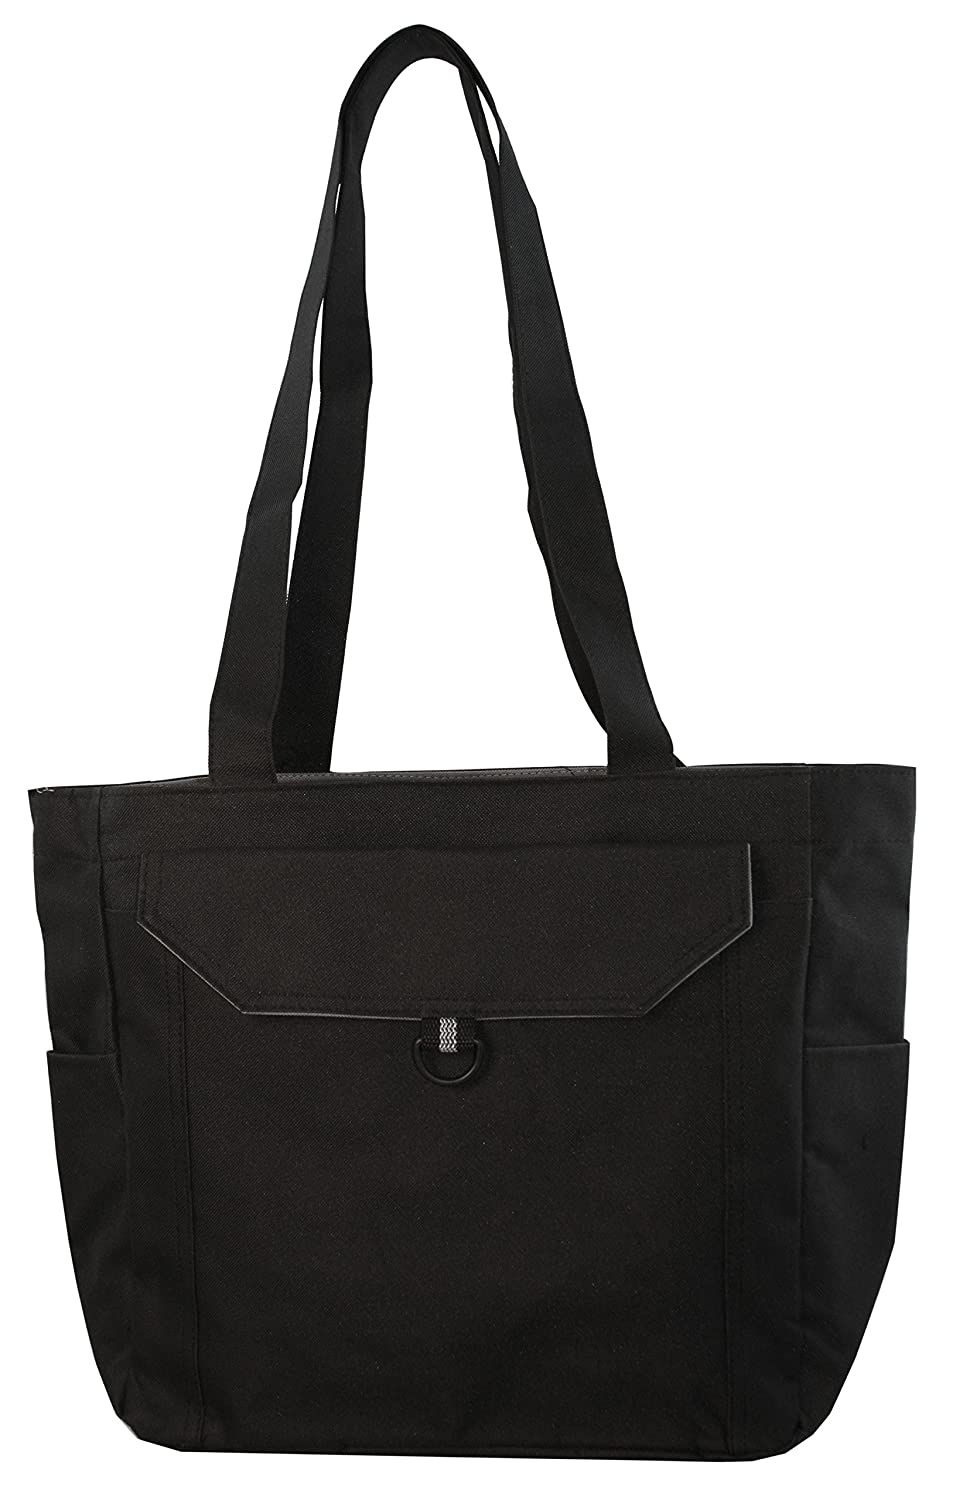 Deluxe Zippered Tote Bag with Long Shoulder Straps: Handbags ...